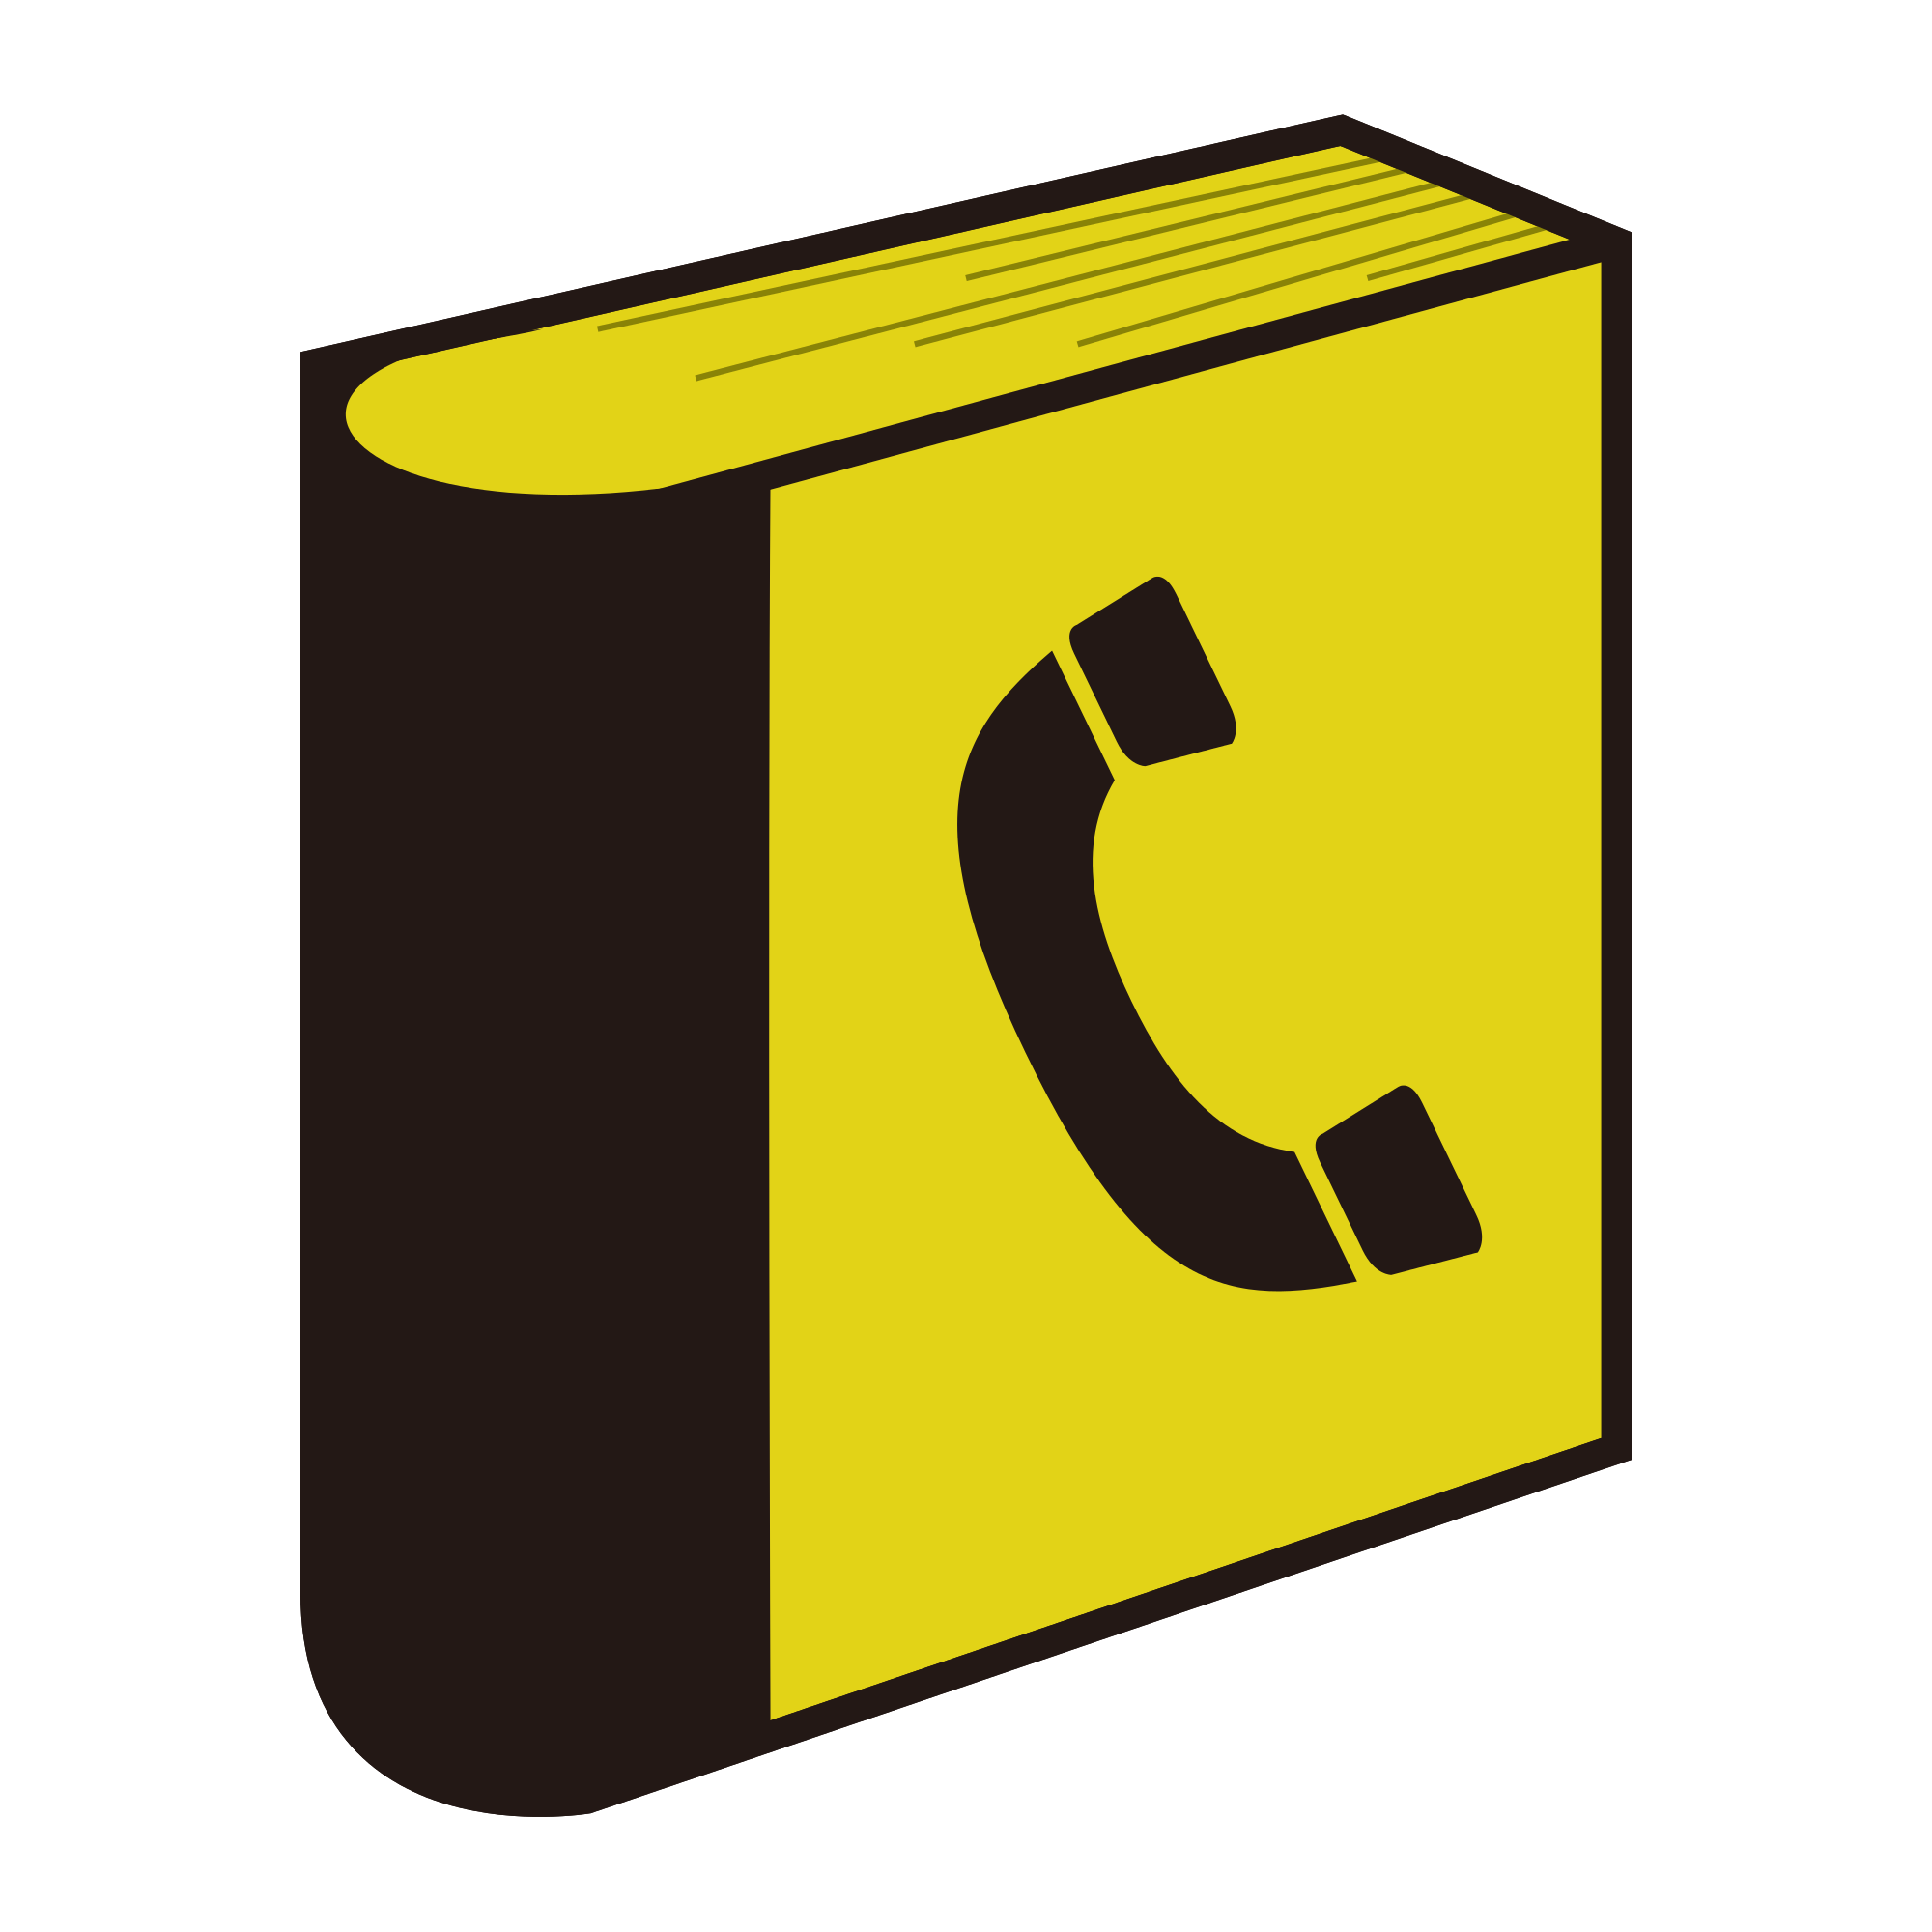 Pictures of phone book clipart png black and white download File:PEO-phone book.svg - Wikimedia Commons png black and white download